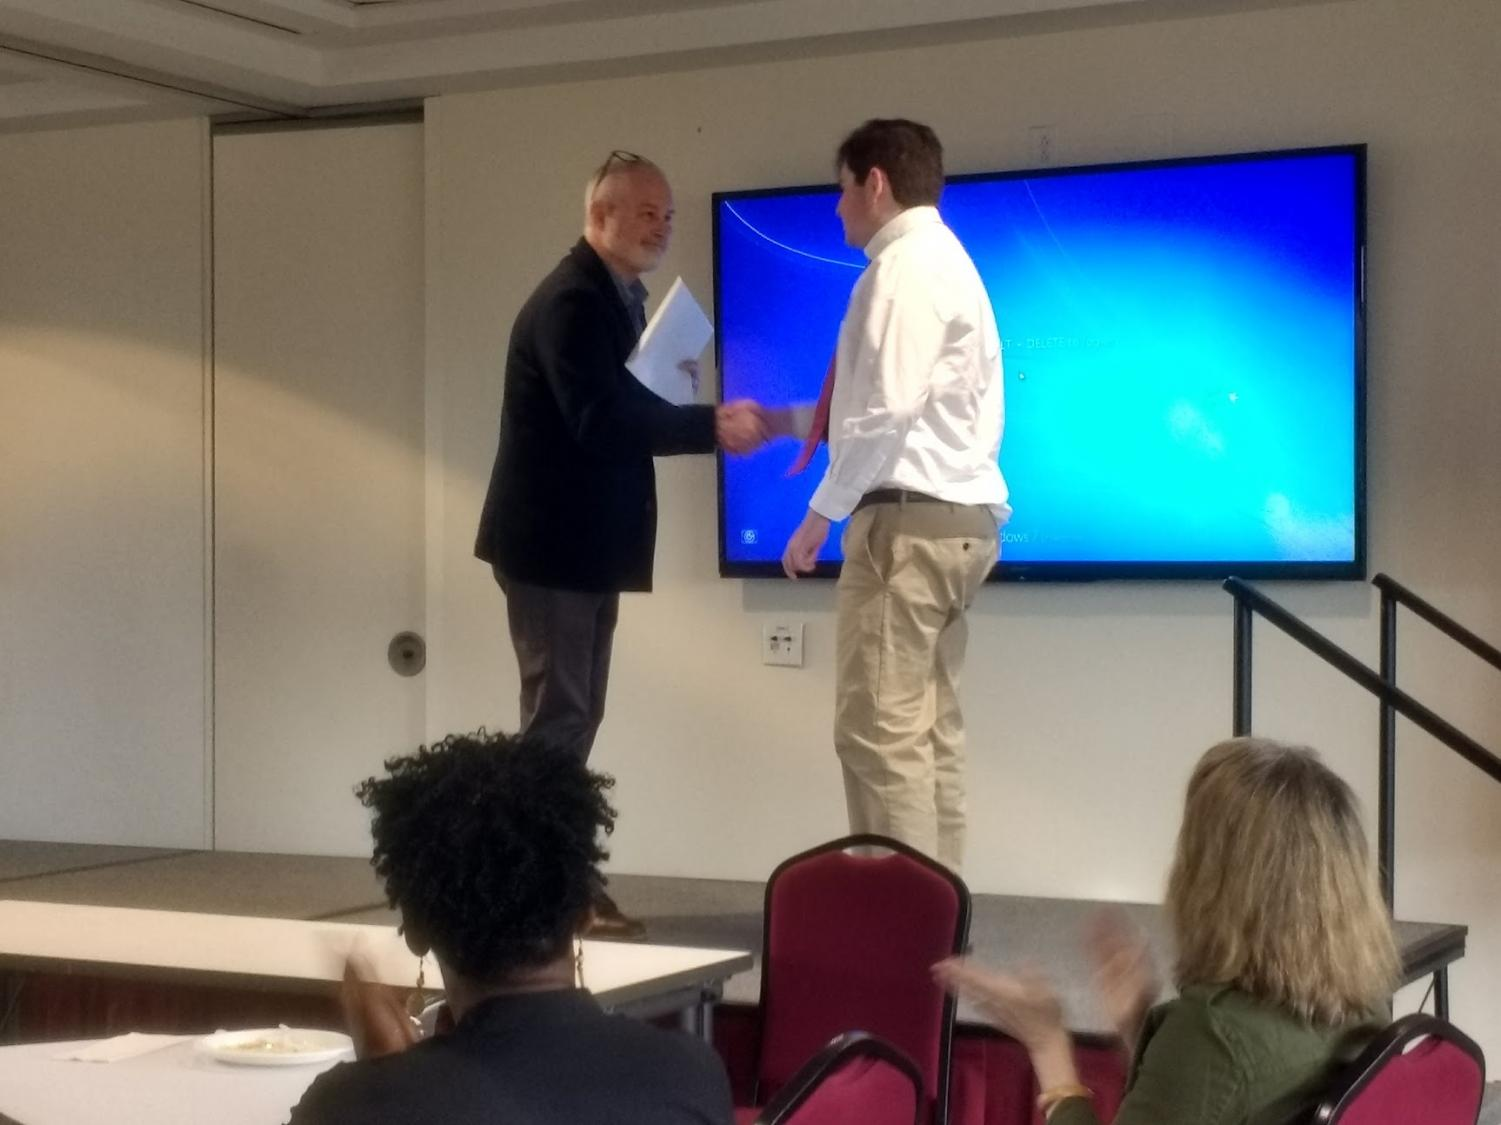 Zachary+Kronsberg+receiving+his+award+for+his+research+project.